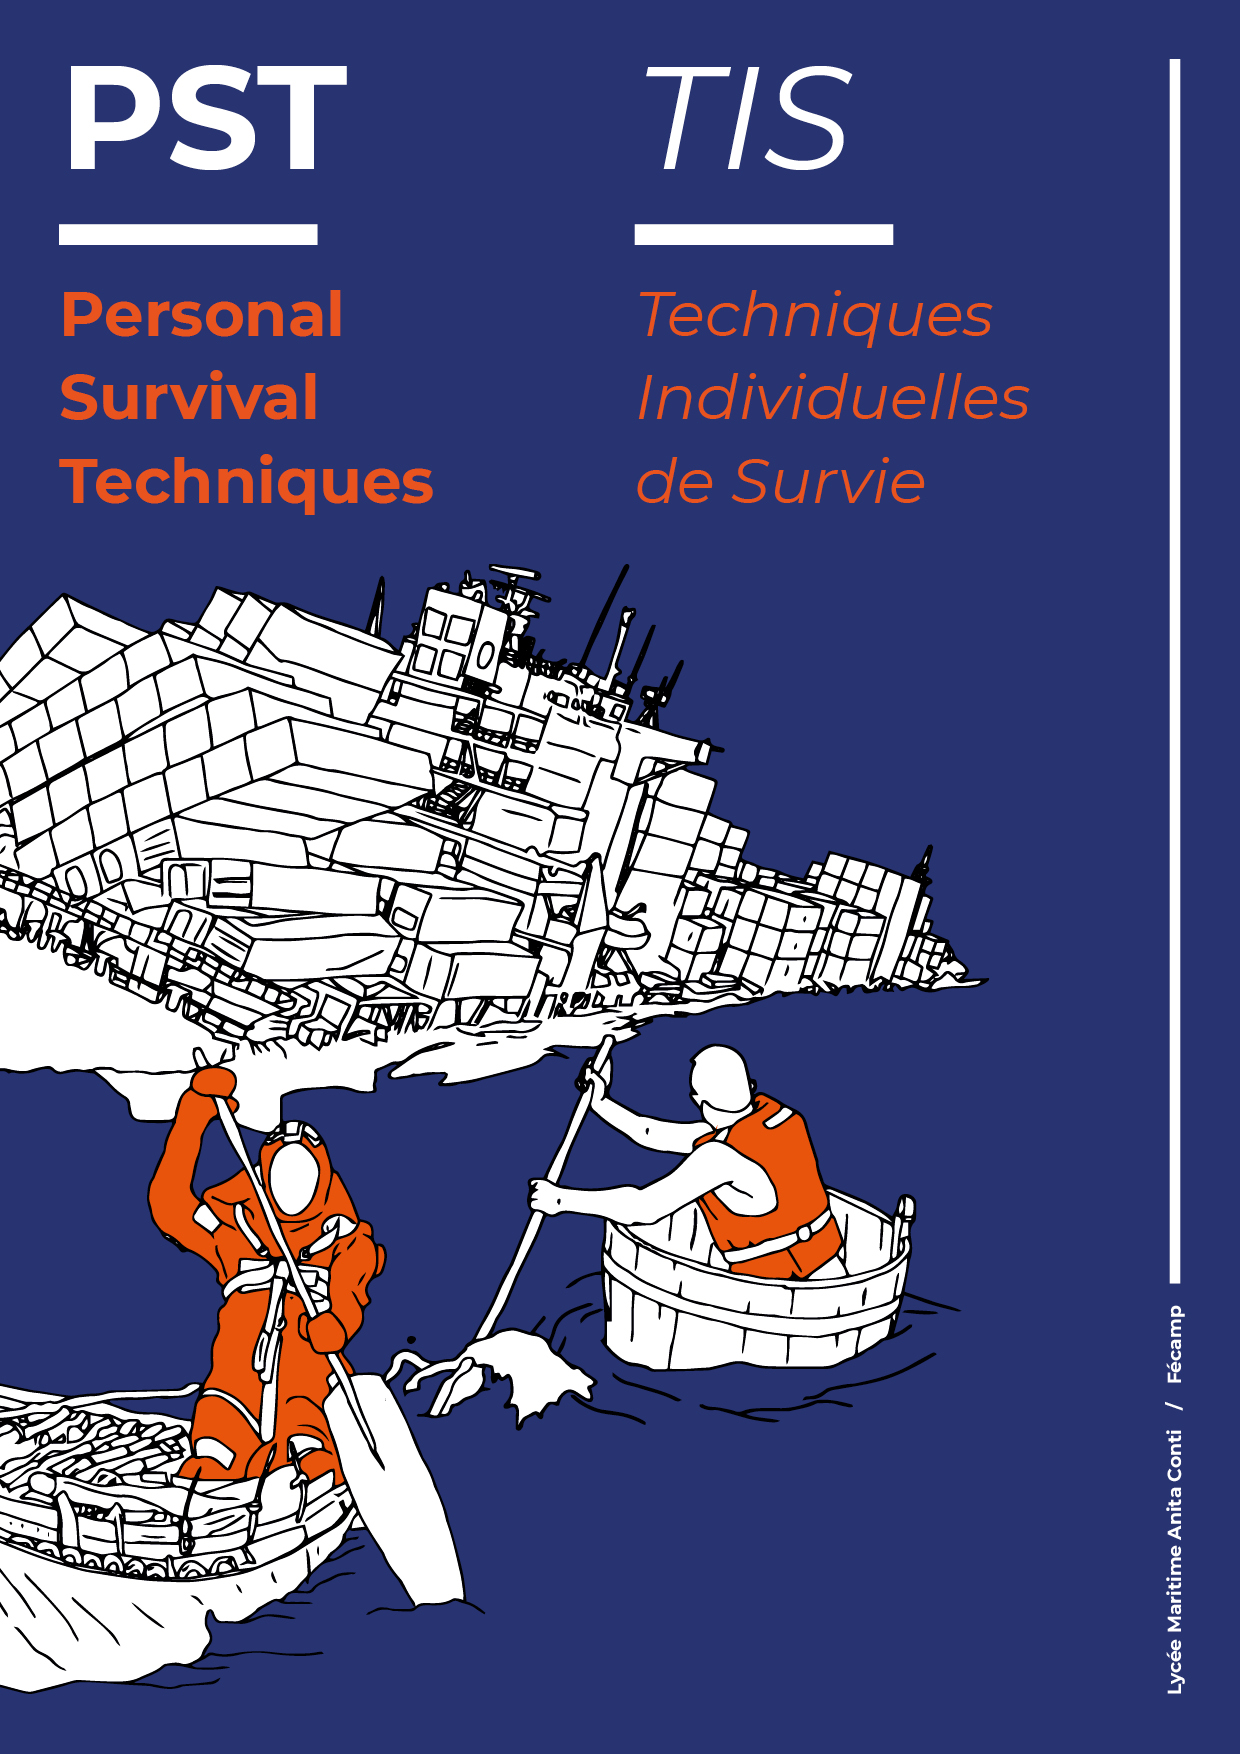 Lycée Maritime Anita Conti :: Security guide vol. I - PST